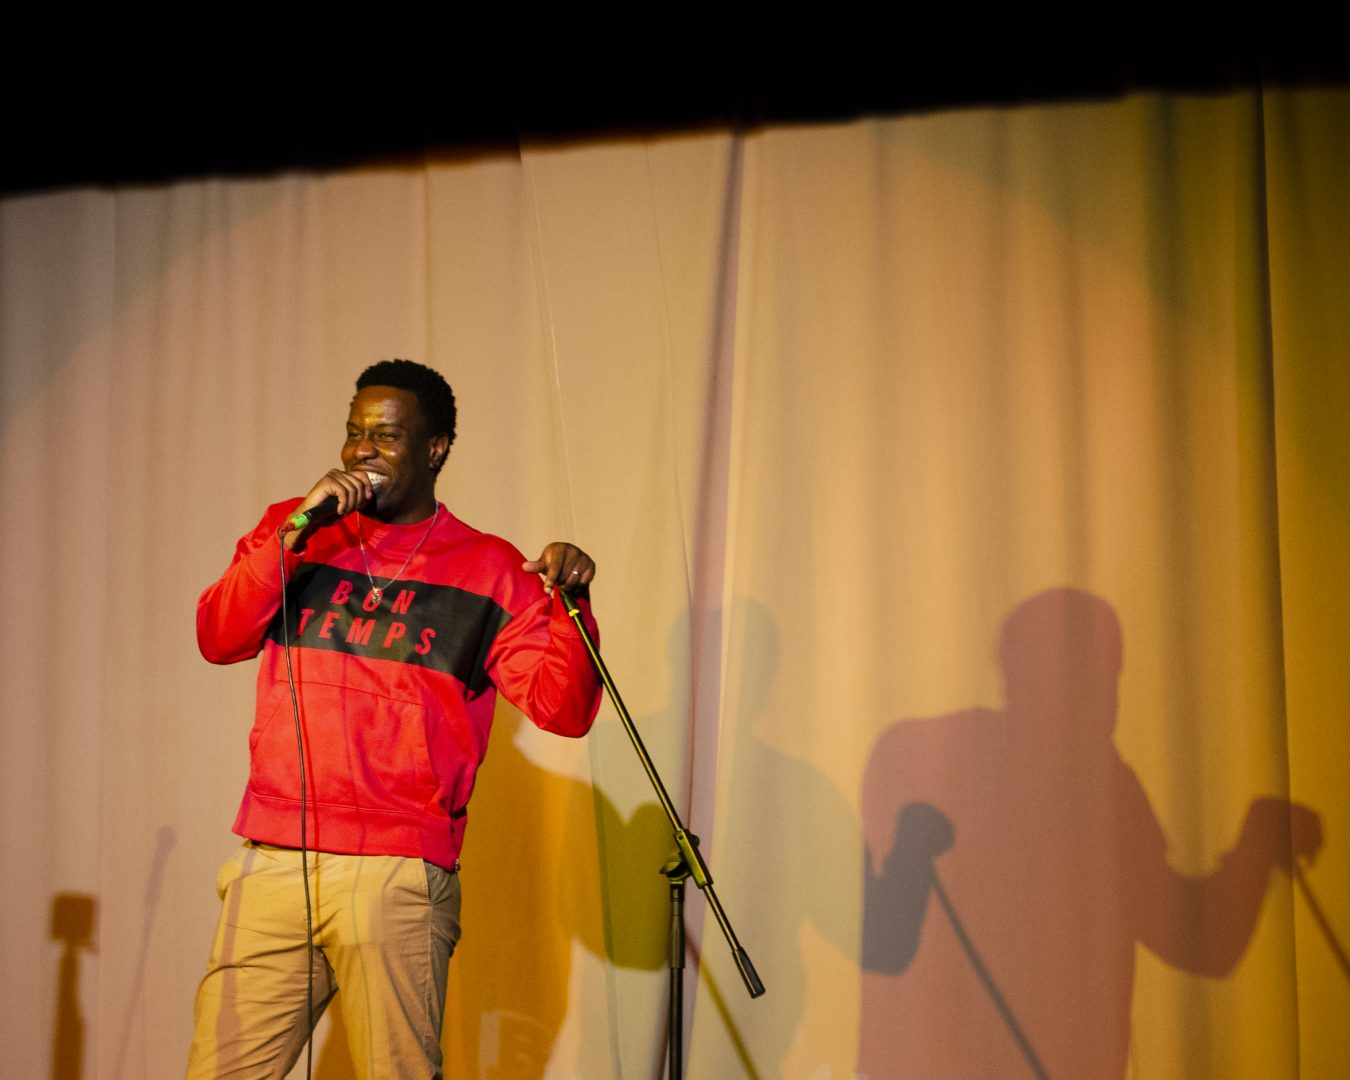 Asante, Stella's Place Peer Training Support Manager speaking into a microphone with a yellow curtain behind him.